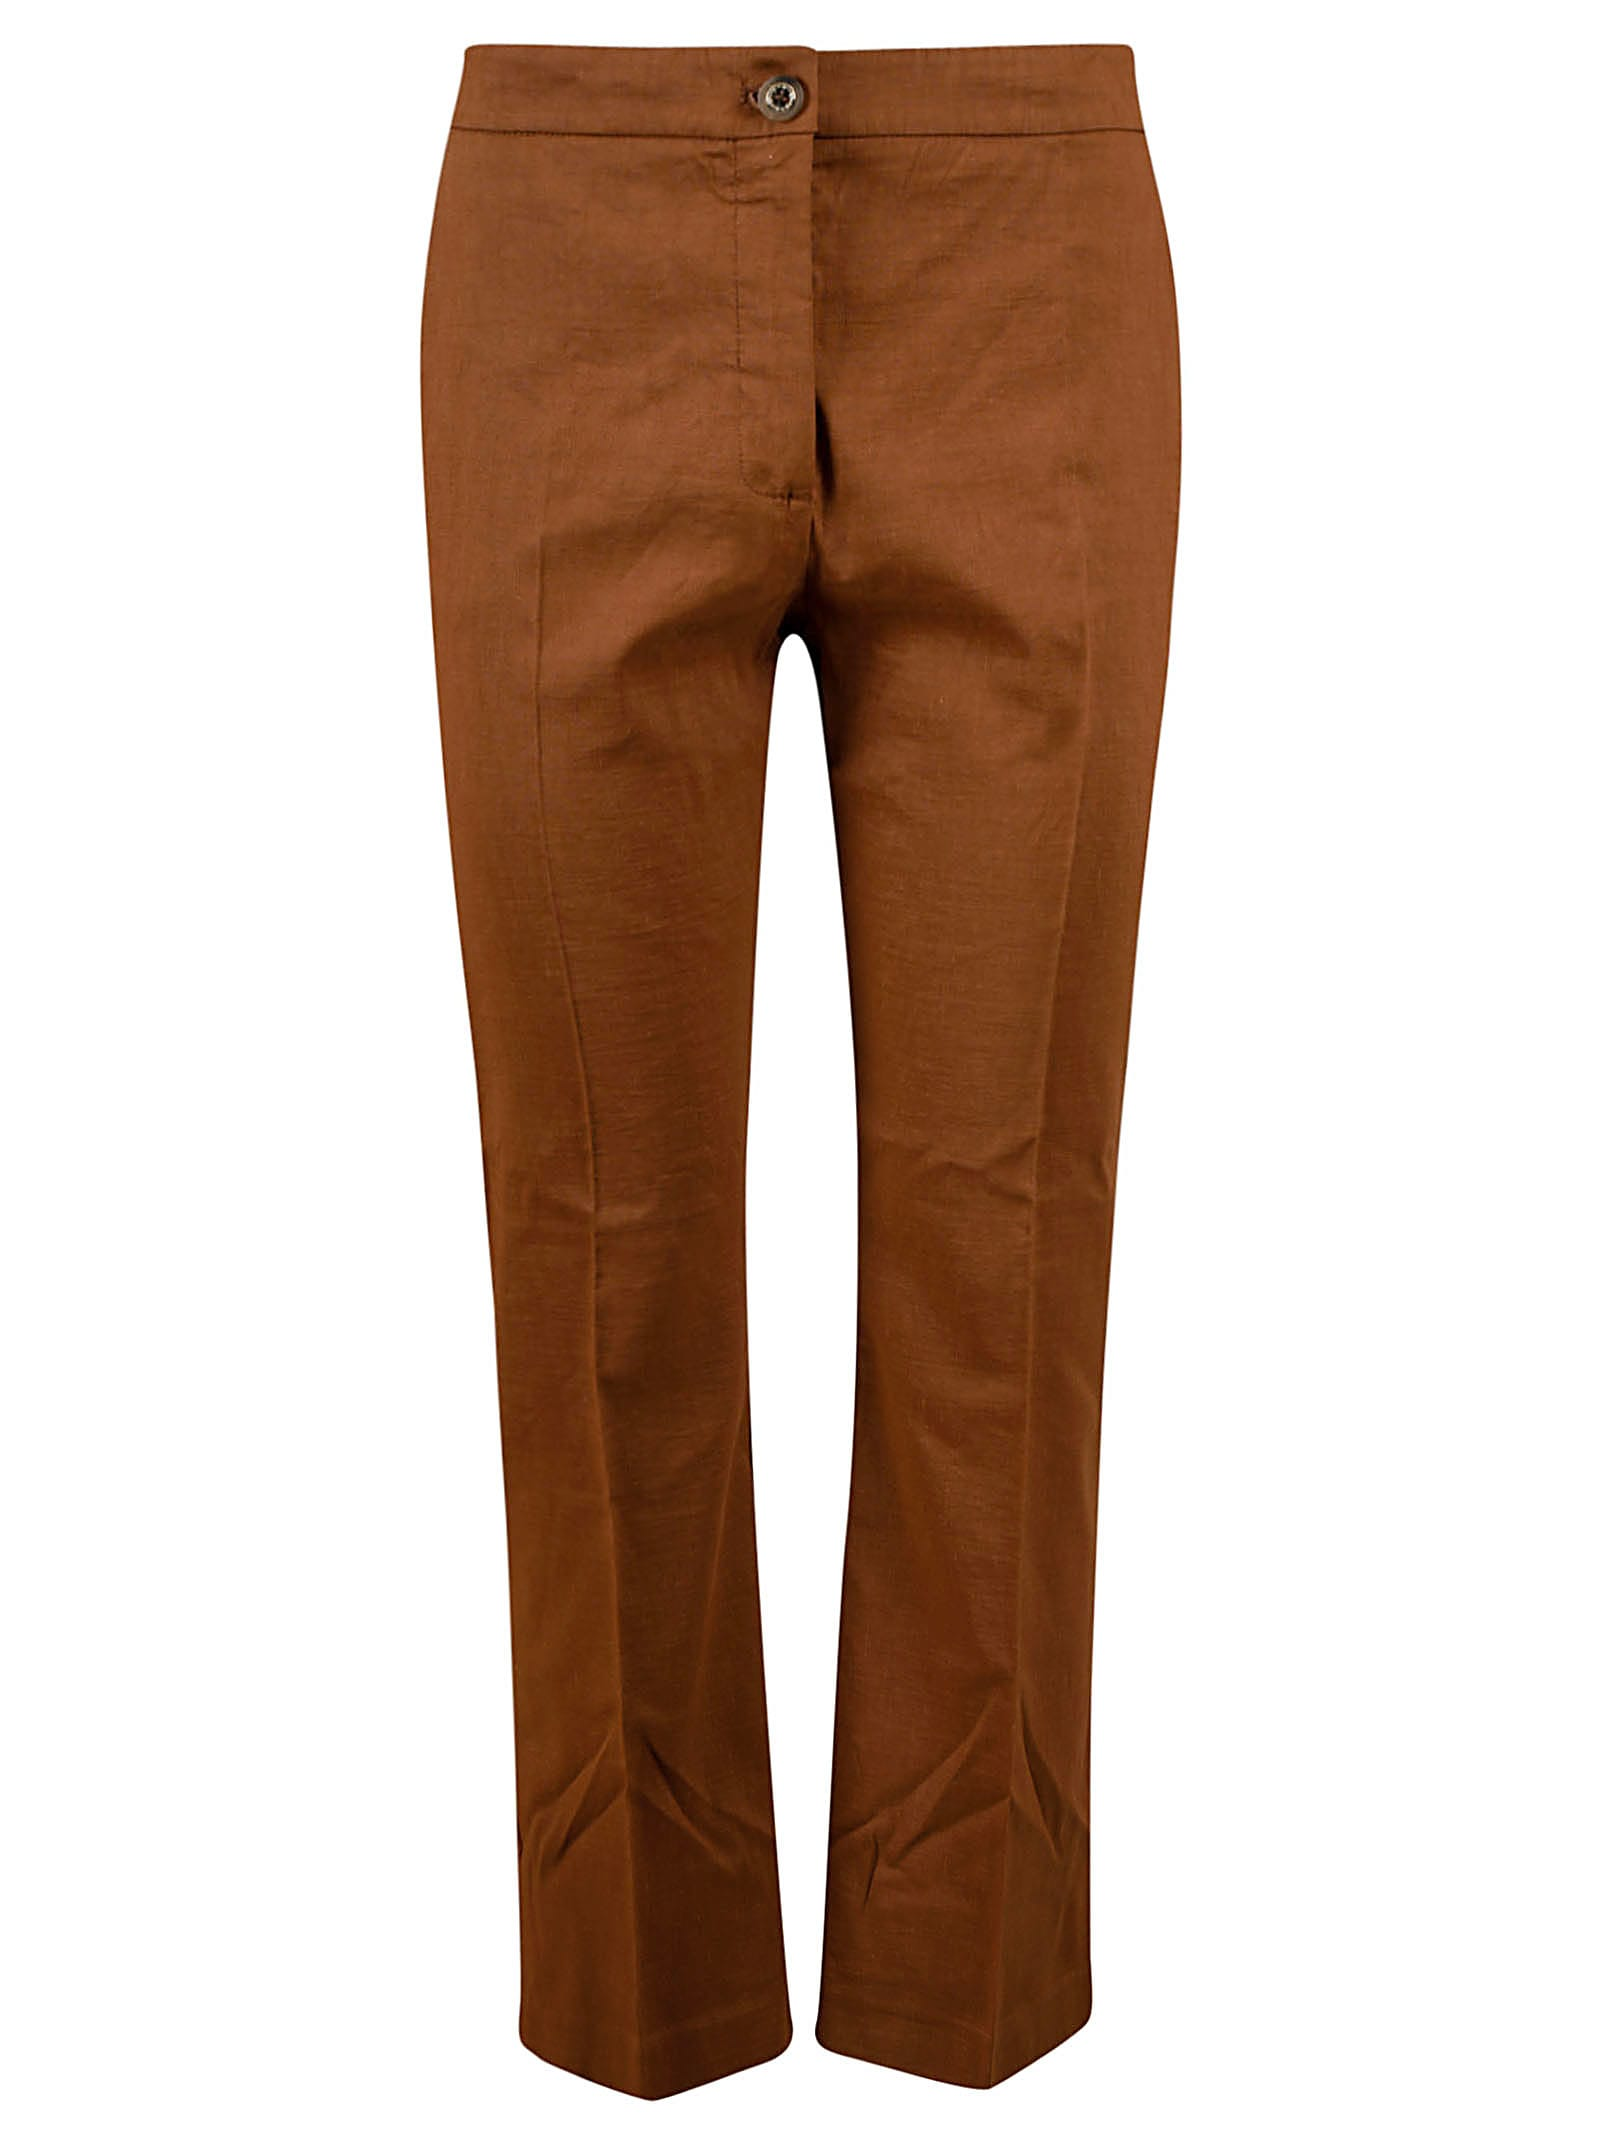 Pinko Linens CLASSIC BUTTONED TROUSERS